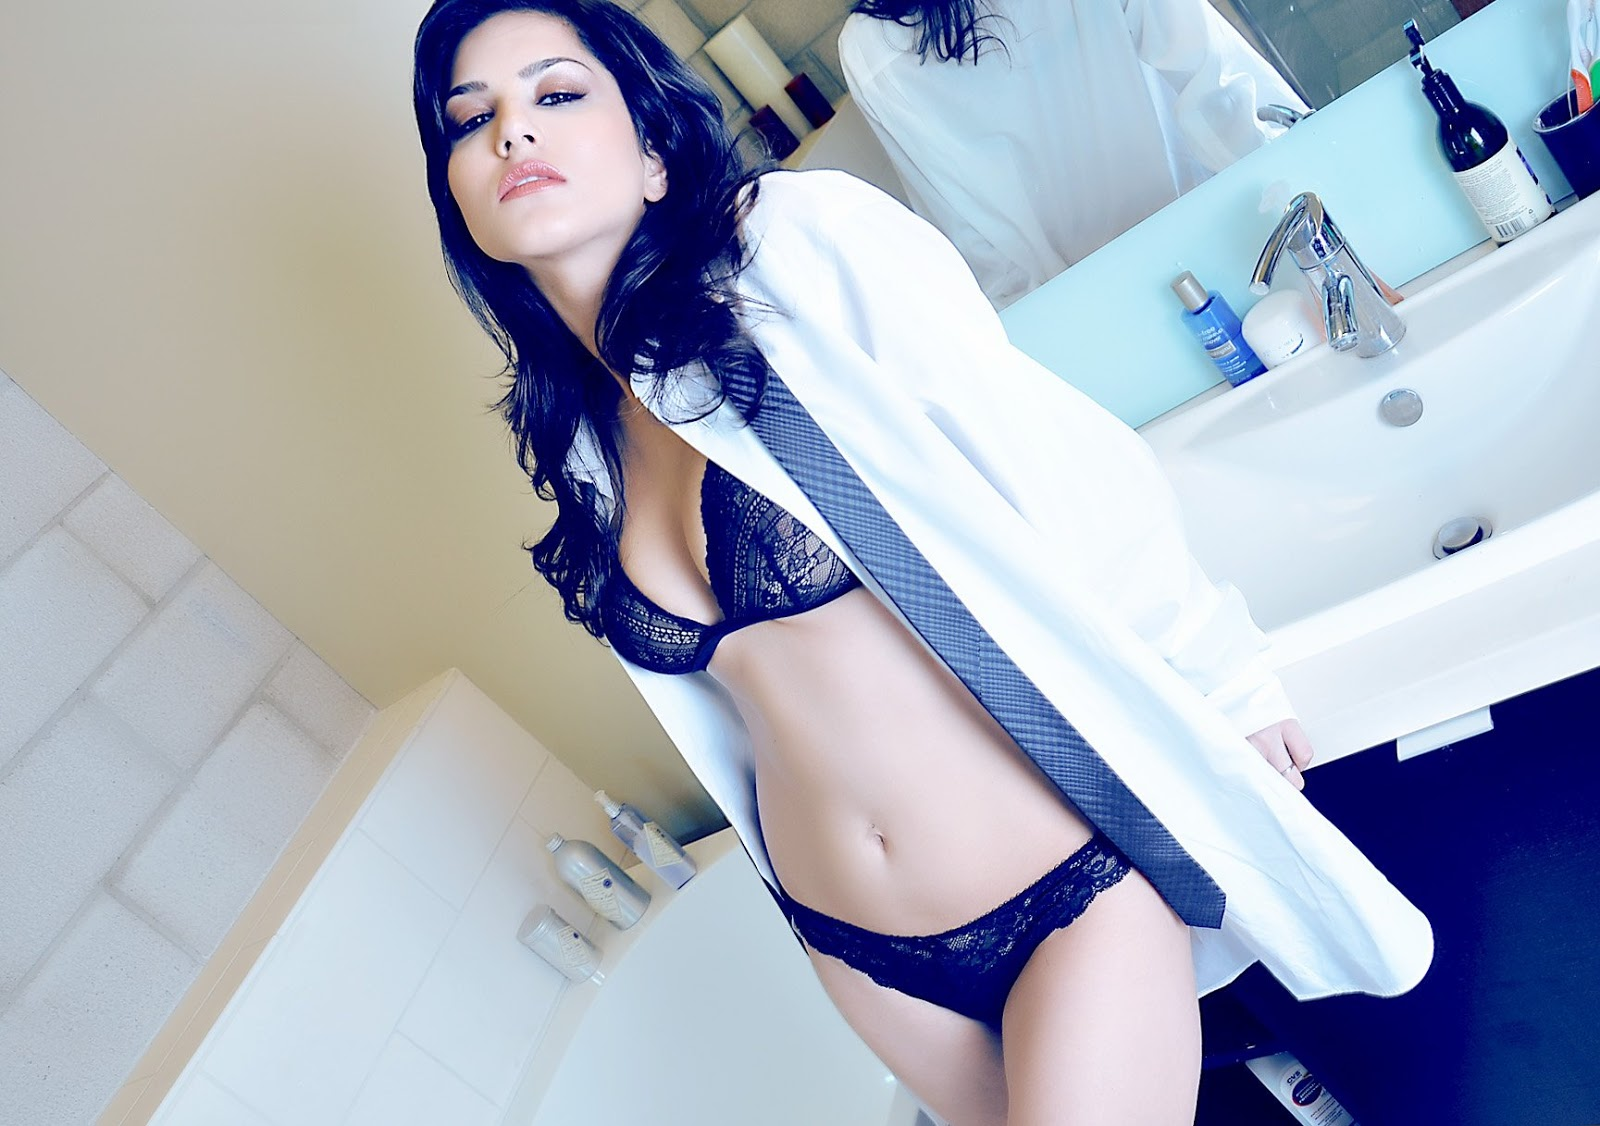 http://4.bp.blogspot.com/-Sa2h8npb4bE/UQYfY5WxL9I/AAAAAAABX_4/GLuMy4dJCQs/s1600/Sunny-leone-smell-of-sex-bathroom-hot-shoot-7.jpg